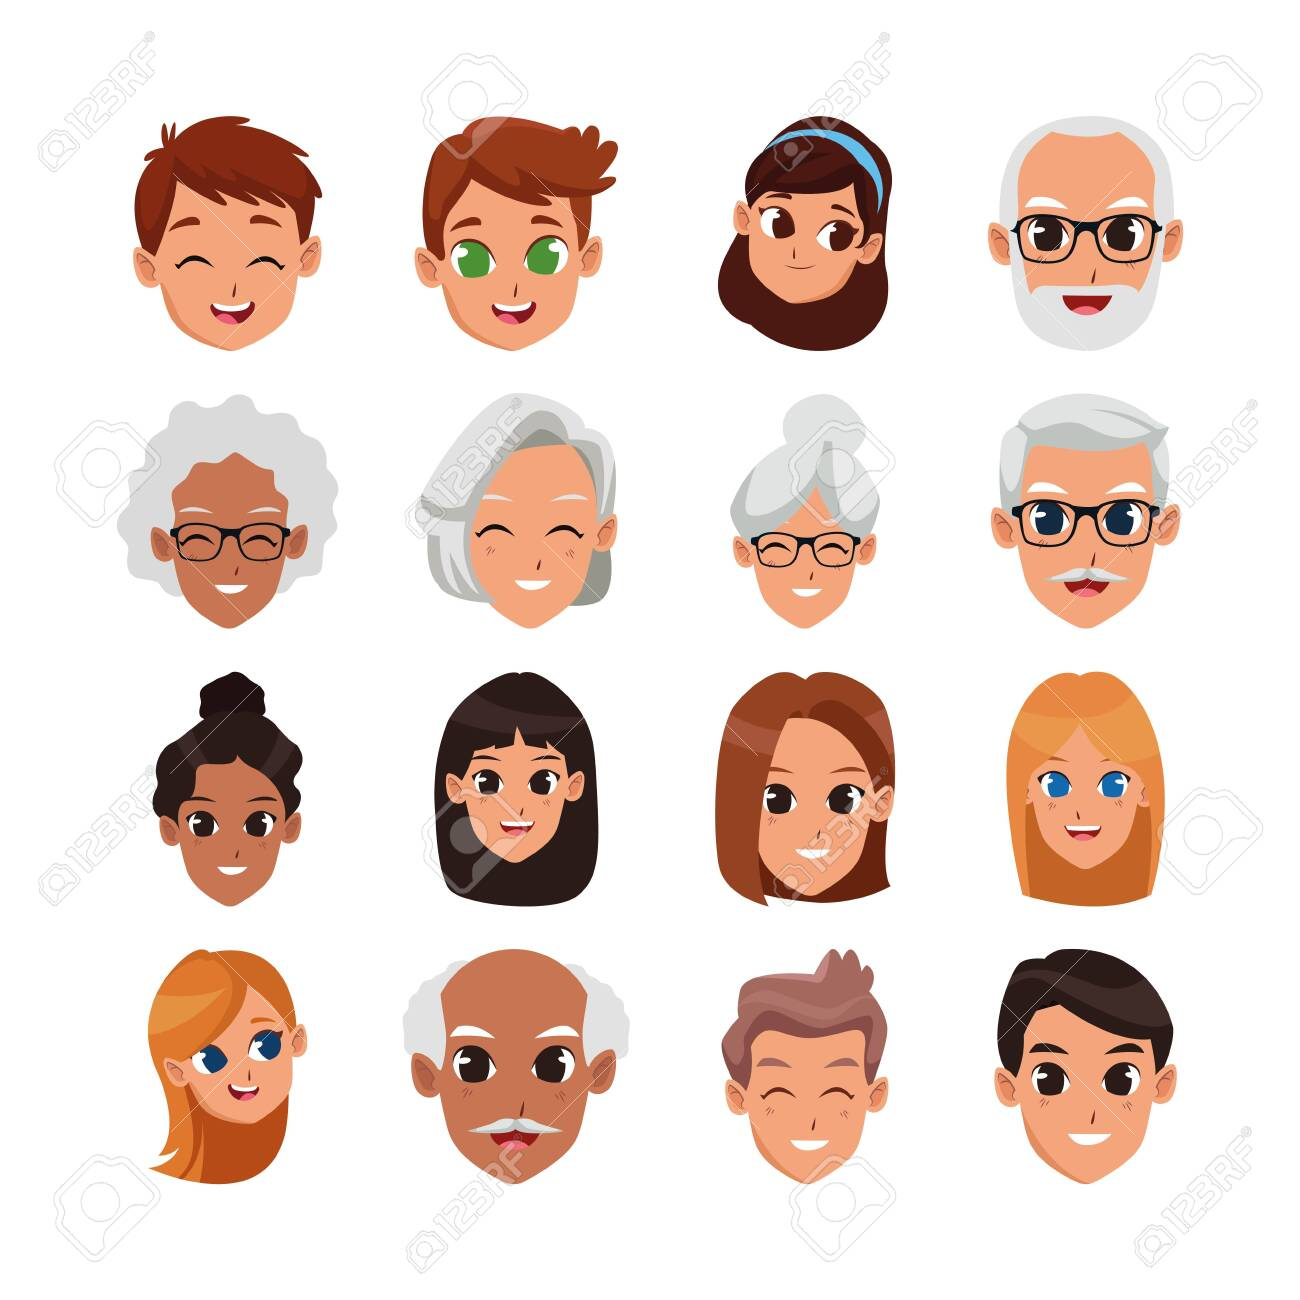 cartoon people happy faces icon set over white background, vector illustration - 134710745